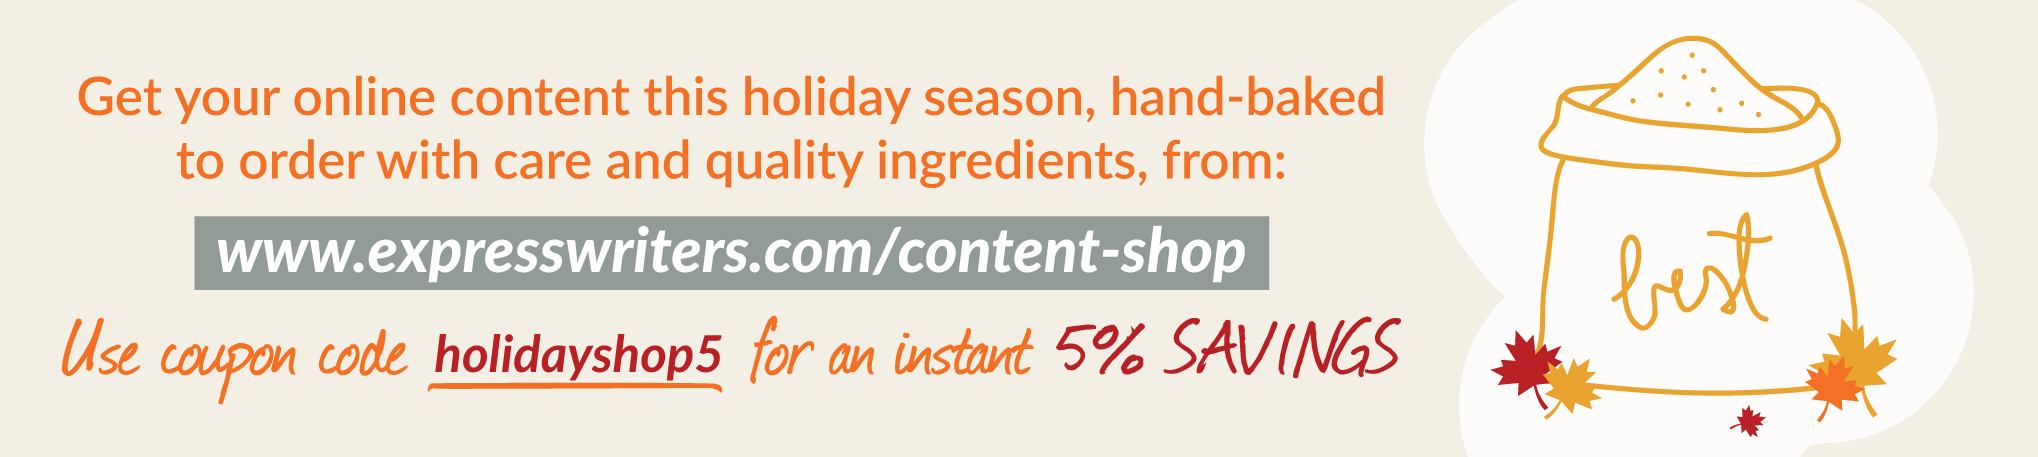 holiday content coupon ew